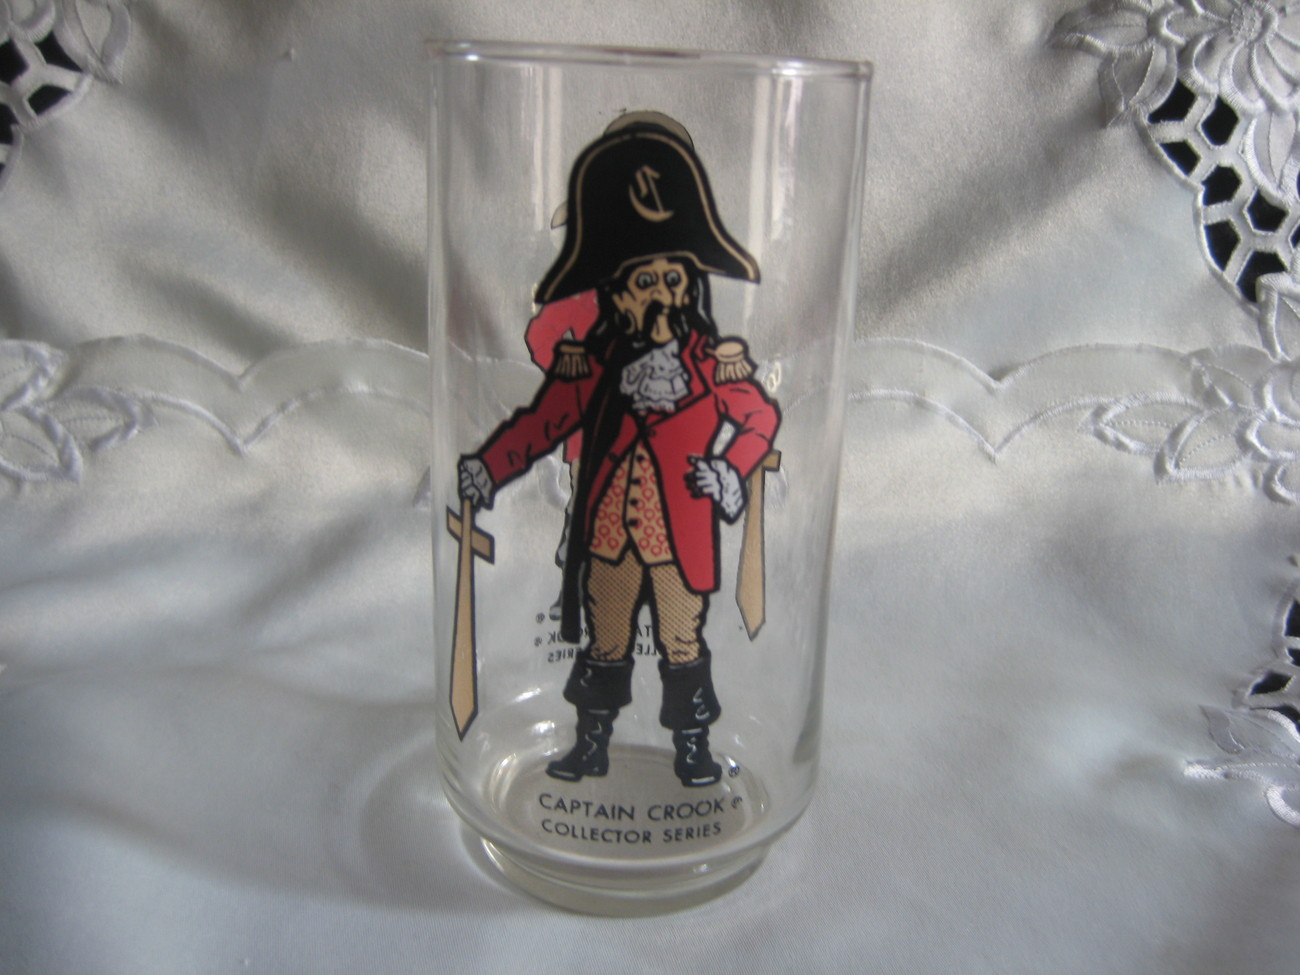 Captain Crook Collectible Drinking Glass